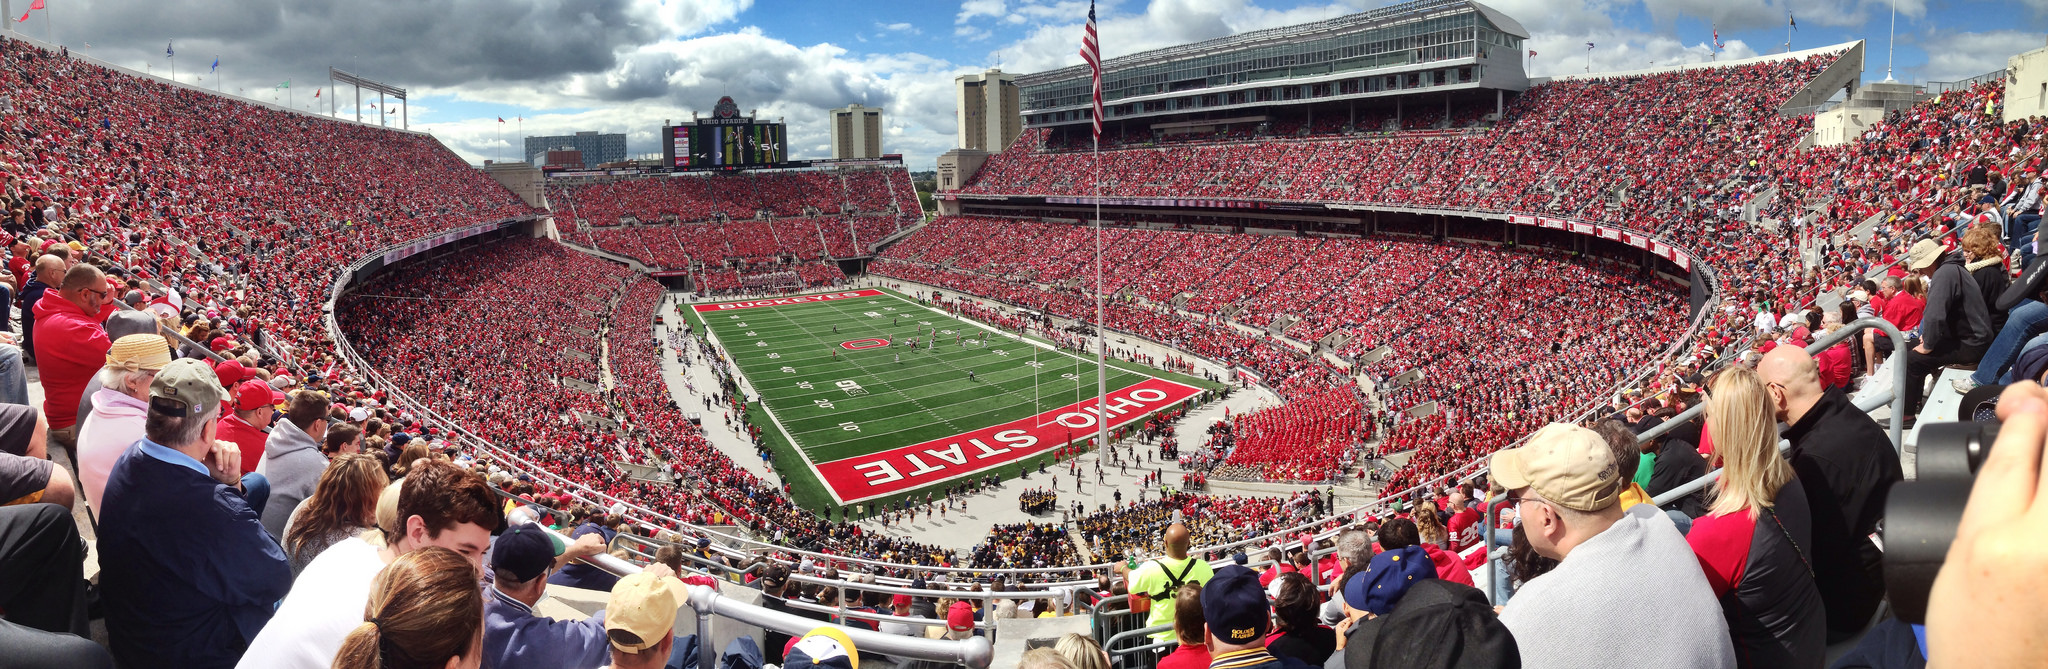 Ohio Stadium - Photo courtesy of Jon Ridinger